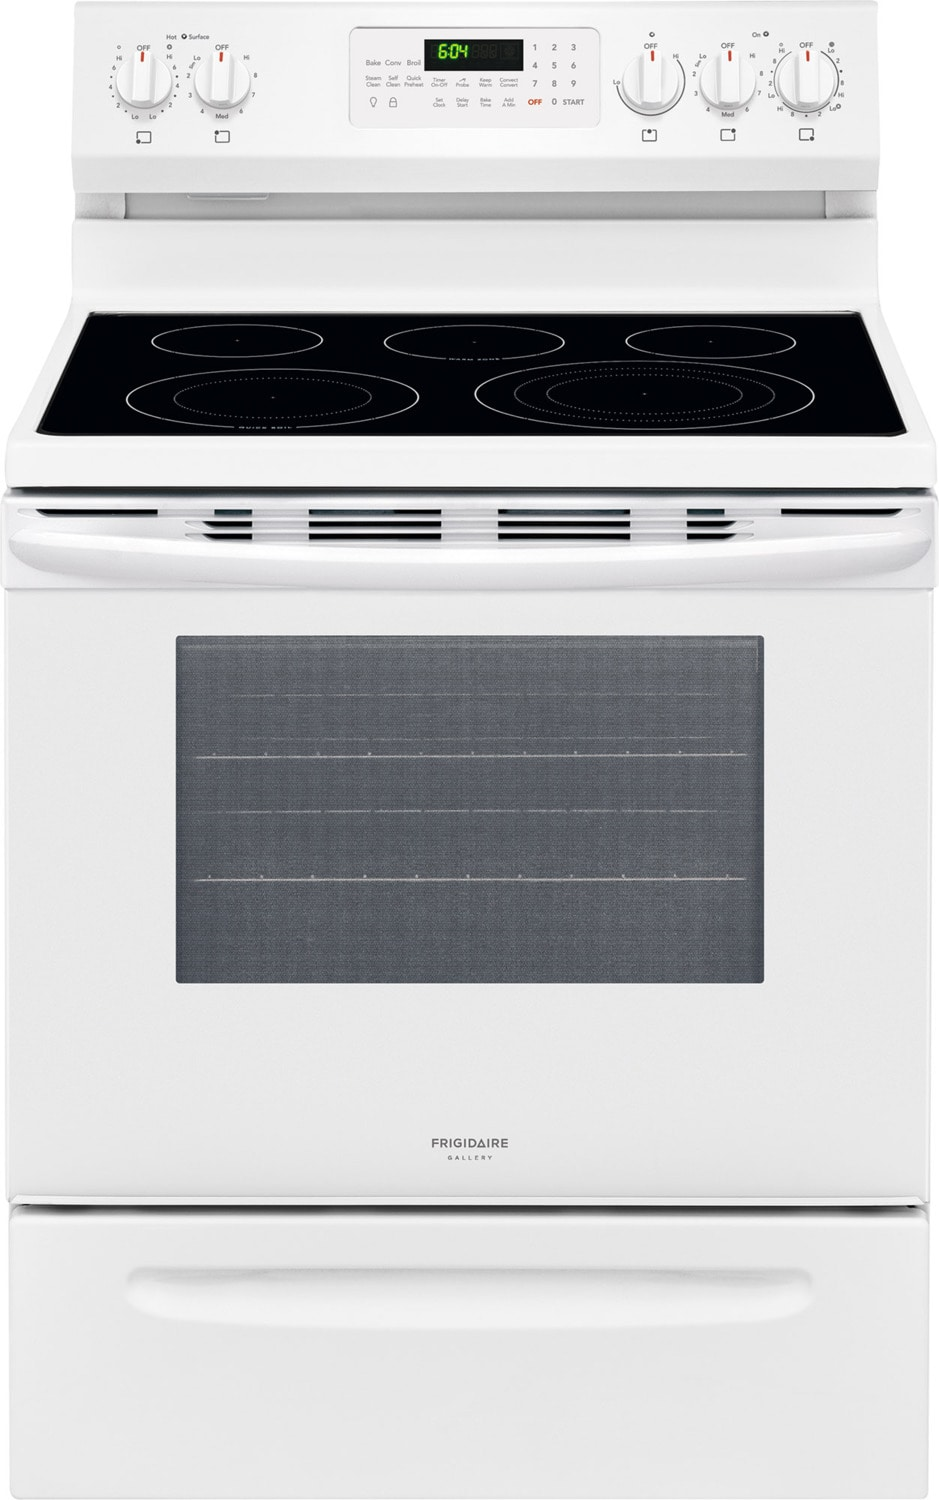 Frigidaire Gallery White Freestanding Electric True Convection Range (5.7 Cu. Ft.) - CGEF3059TW